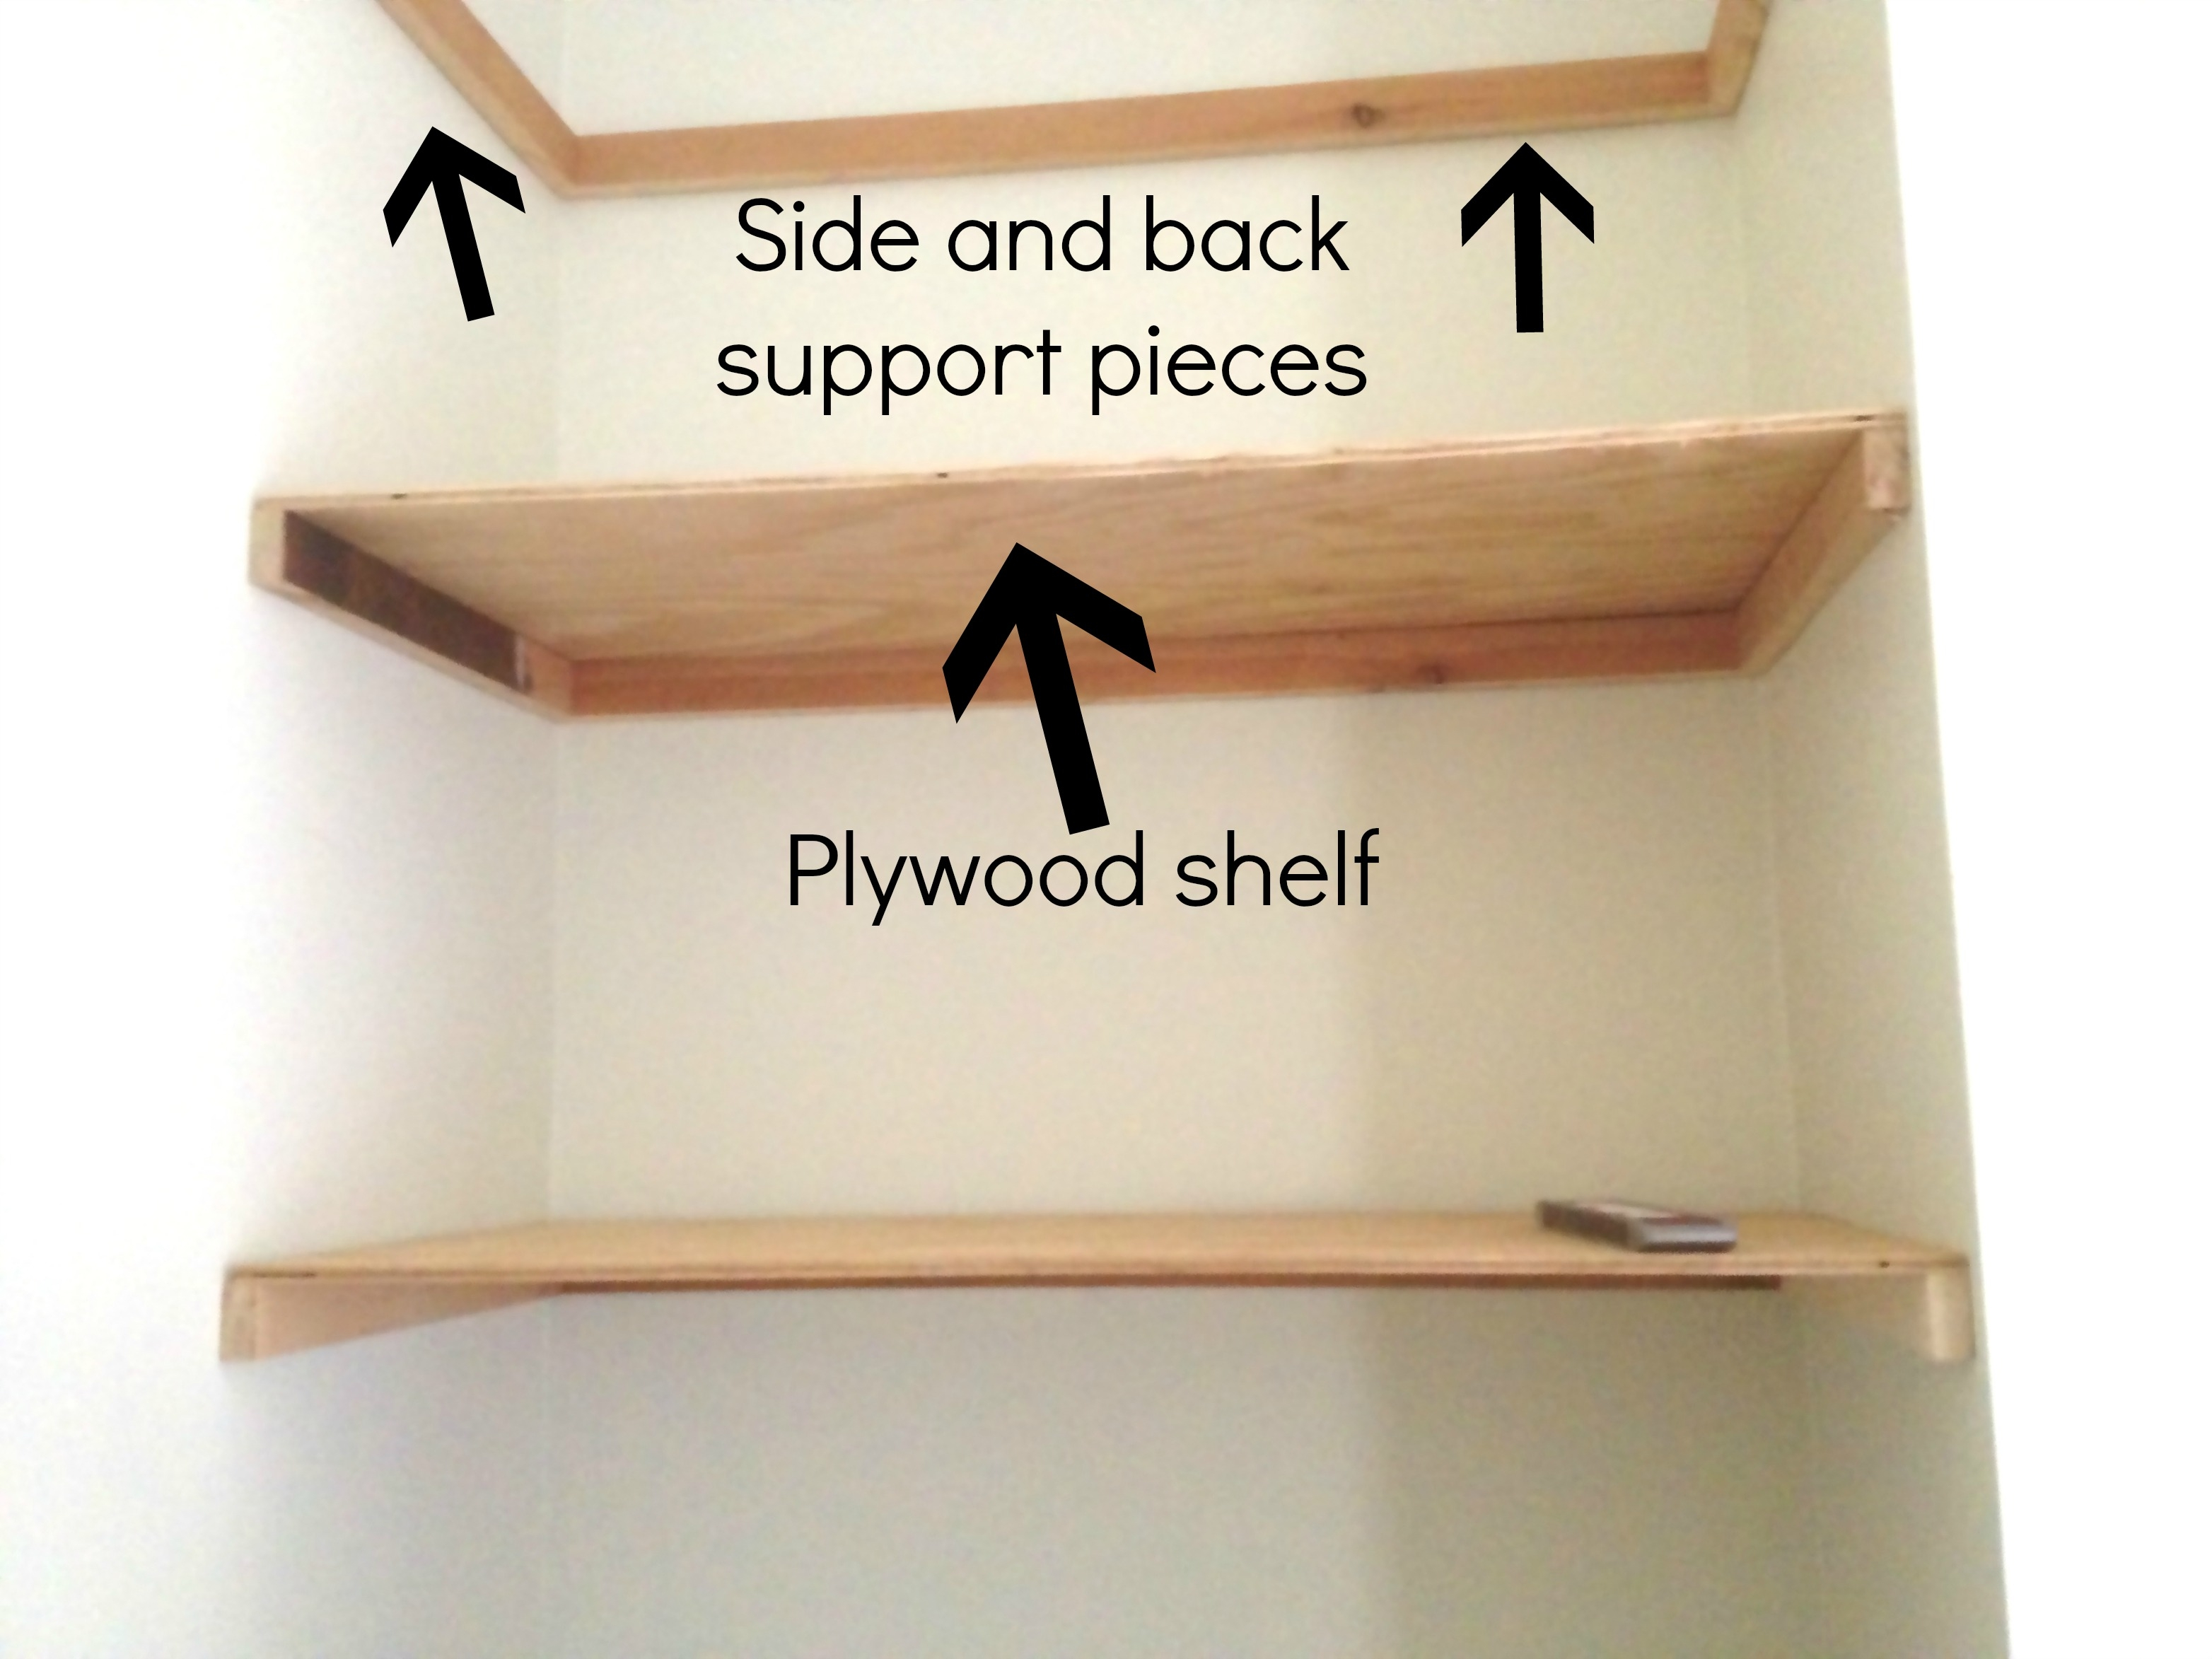 How To Hang Glass Shelves Collage Andrea Outloud Regarding Free Floating Glass Shelves (View 15 of 15)